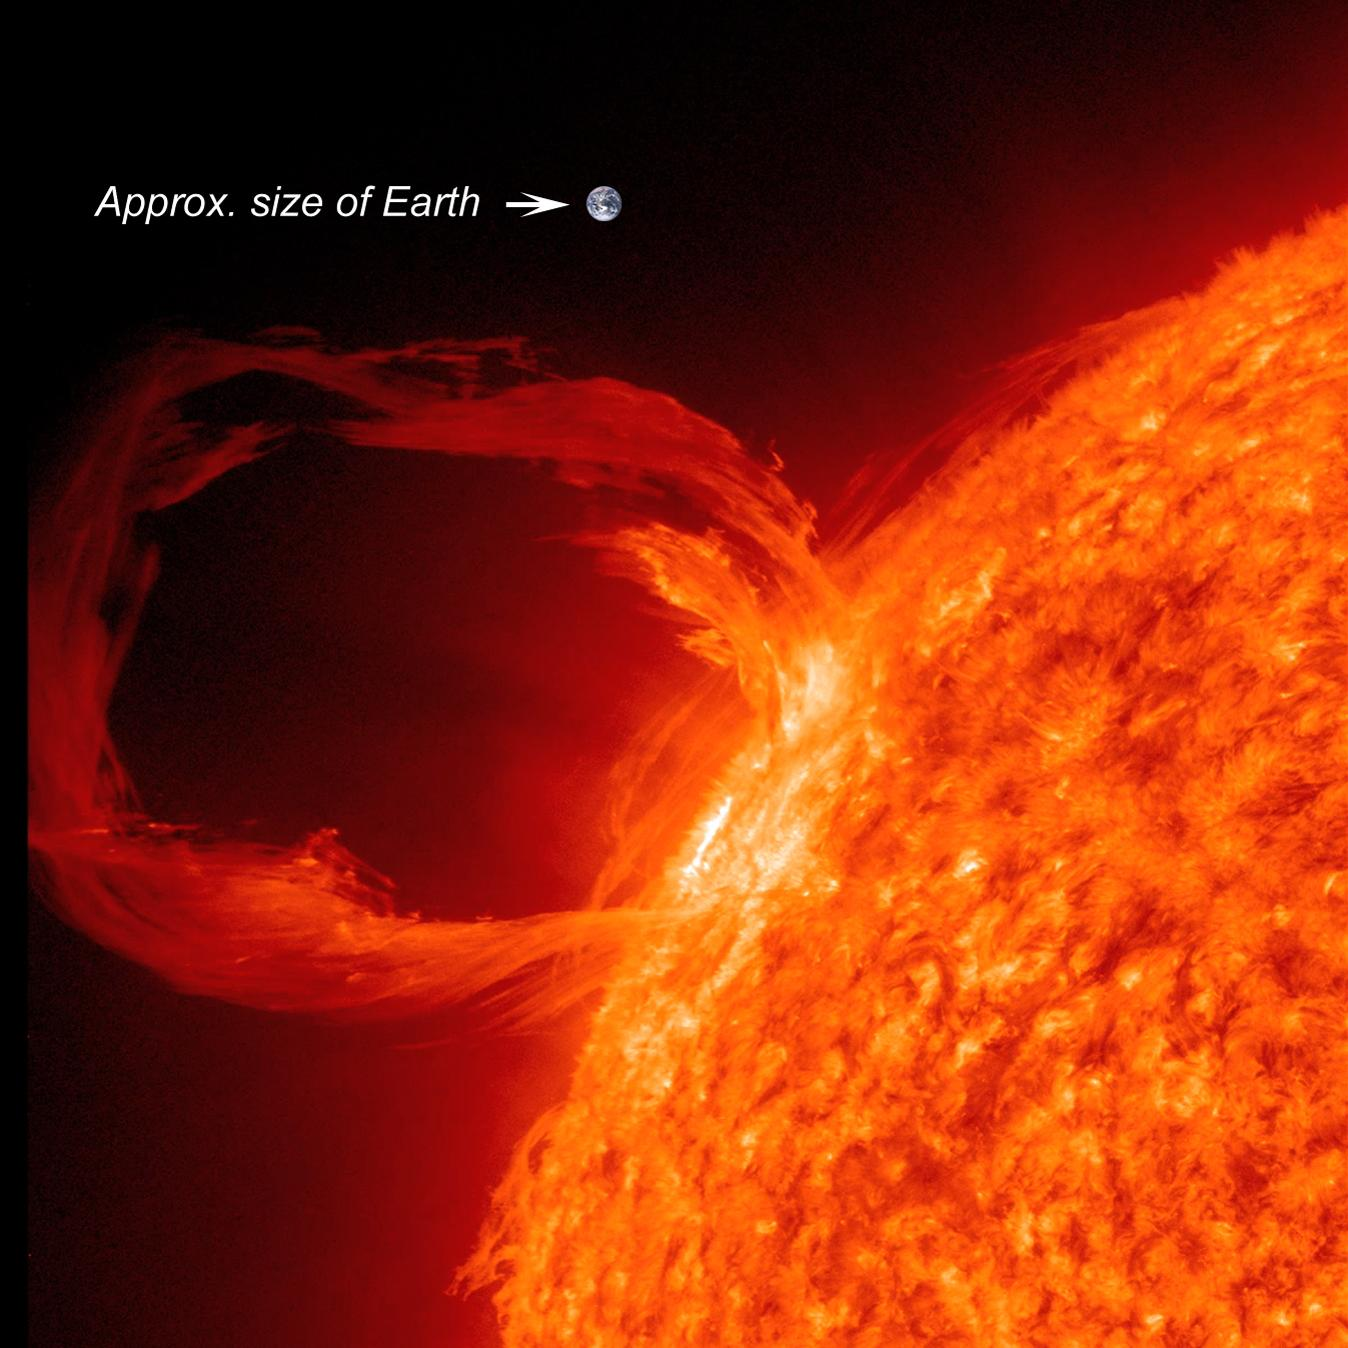 http://www.nasa.gov/images/content/515512main_prominence_Earthscale-033010-orig_full.jpg